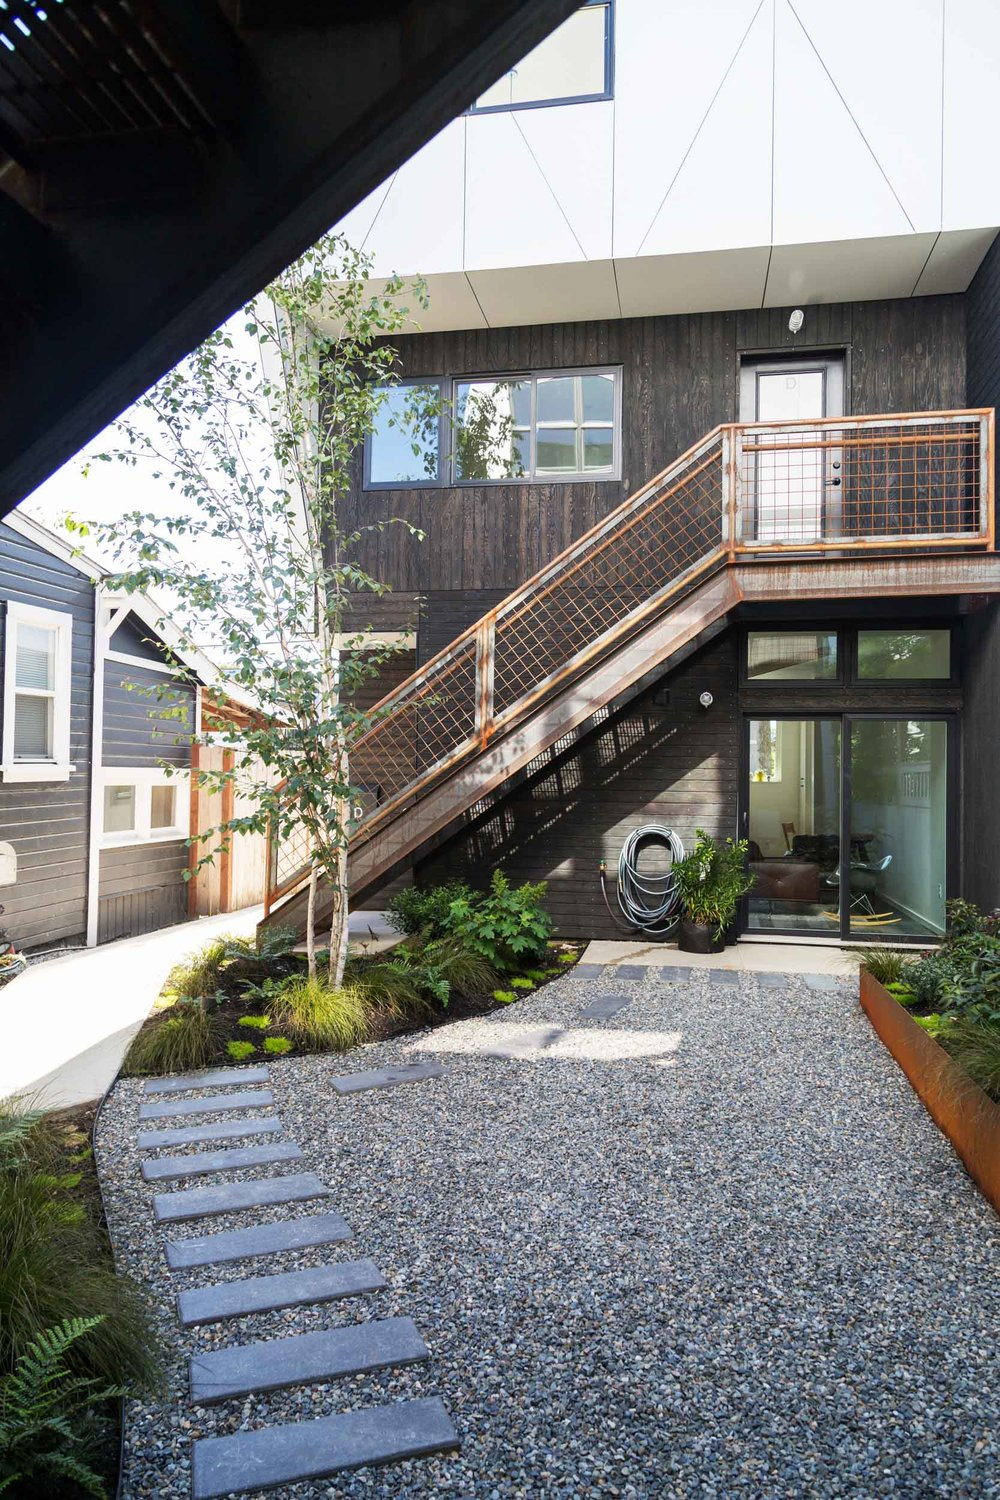 WC-STUDIO-PROSPECT-COURTYARD-STEPPING-STONES-STEEL-PLANTER-BOX-FERNS